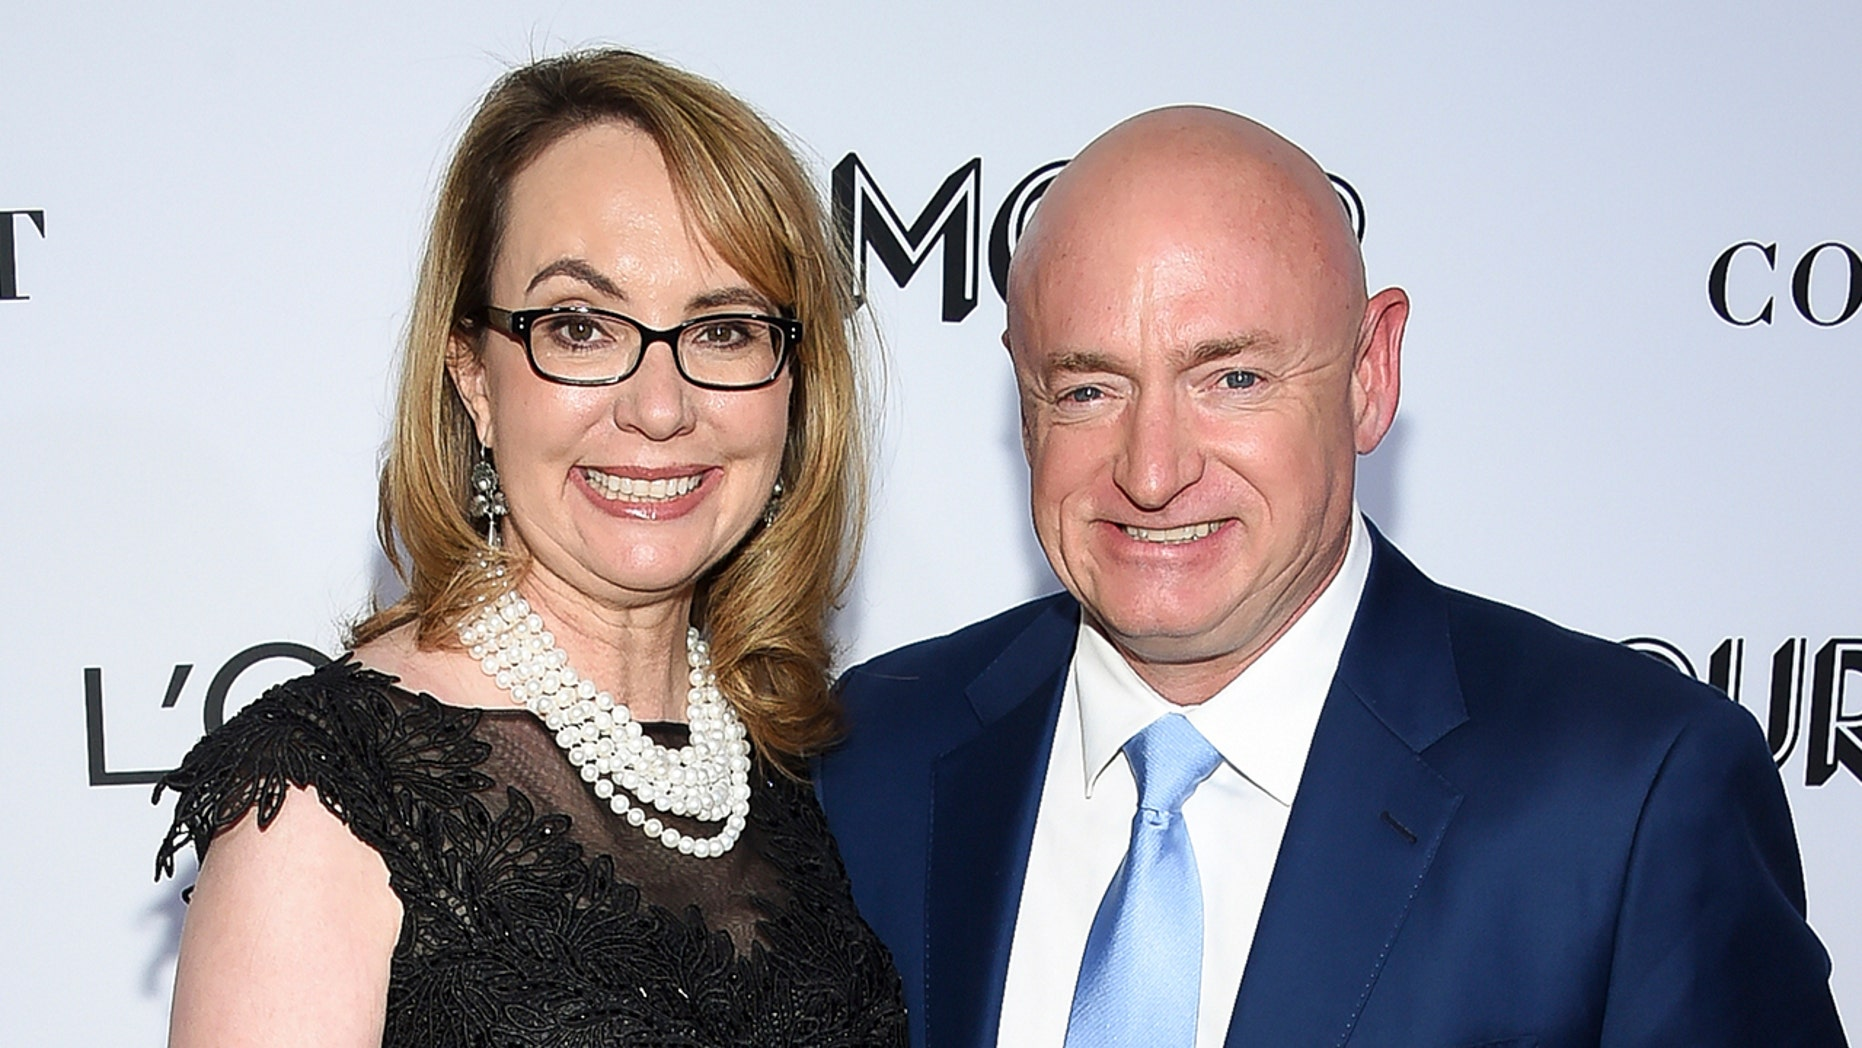 Gabby Giffords' Husband and Former Astronaut is Running for Senate